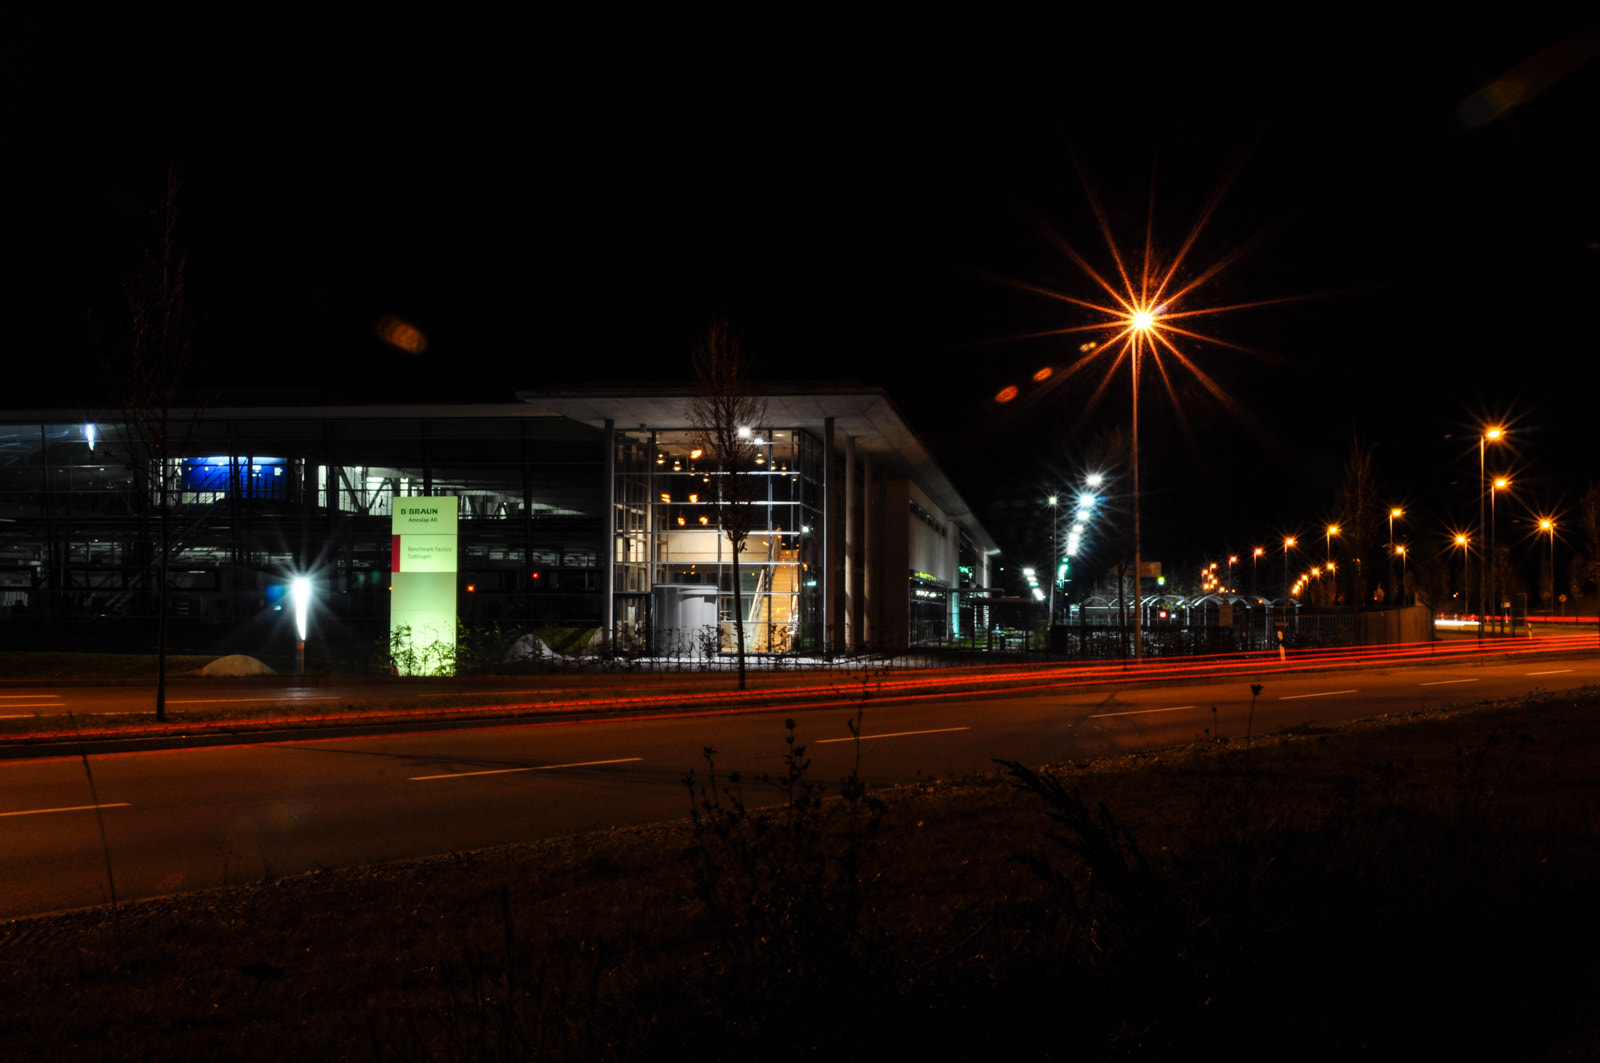 Photograph Aesculap AG - Benchmark Factory by Torsten Trunz on 500px